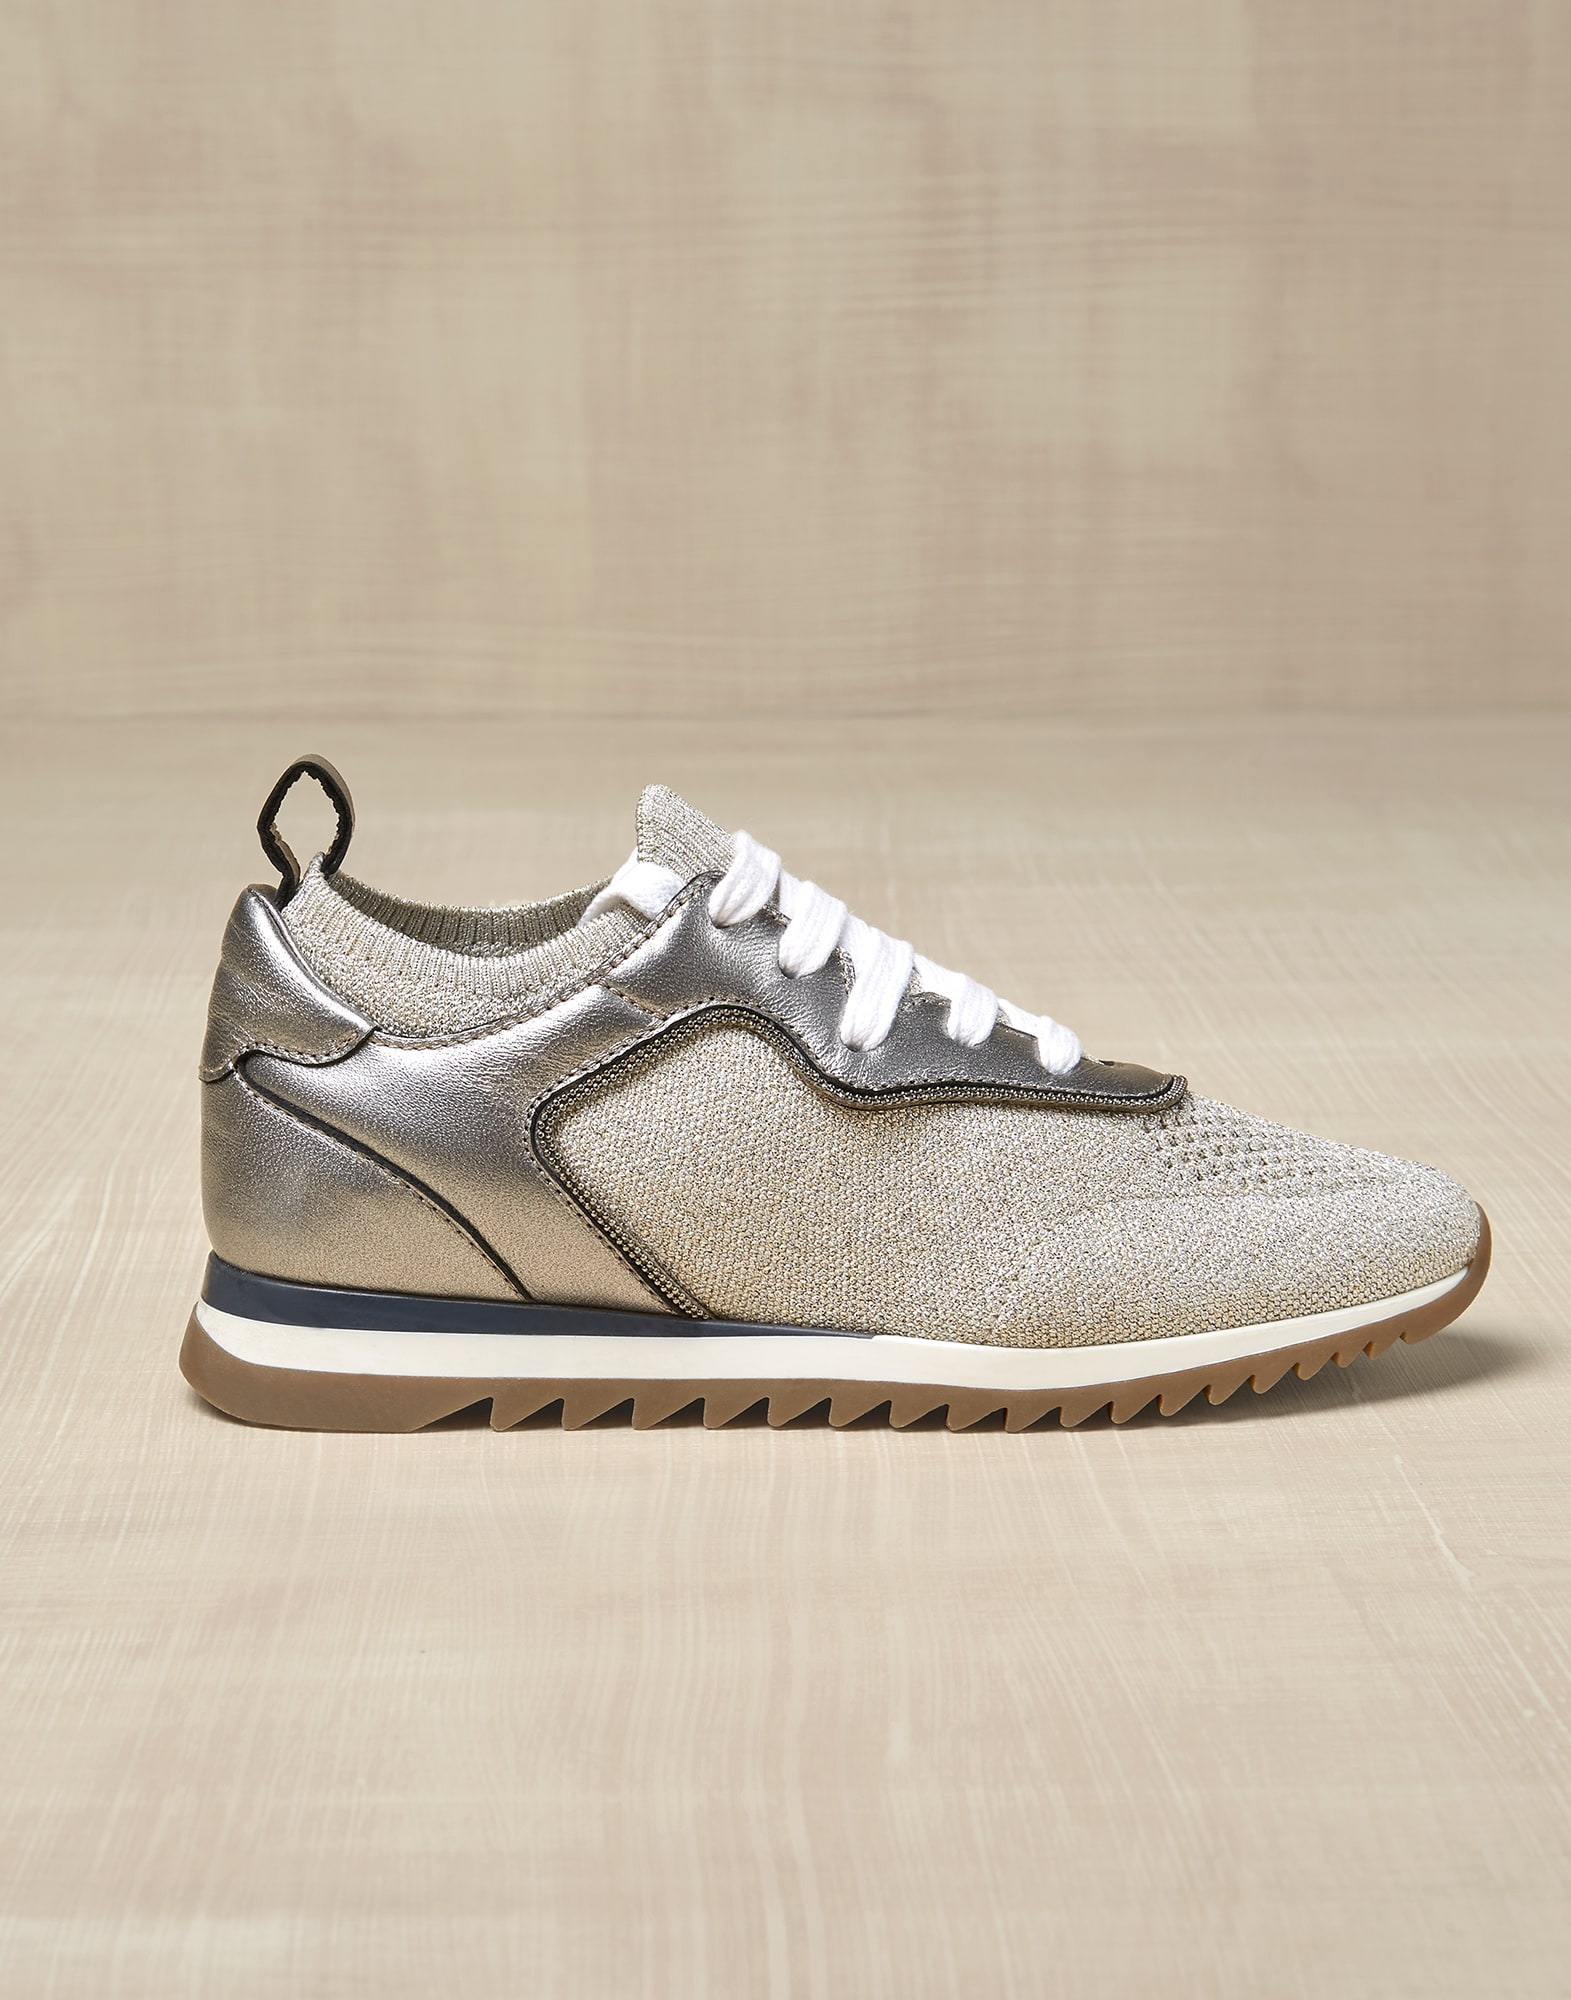 Sneakers Beige Girl 0 - Brunello Cucinelli